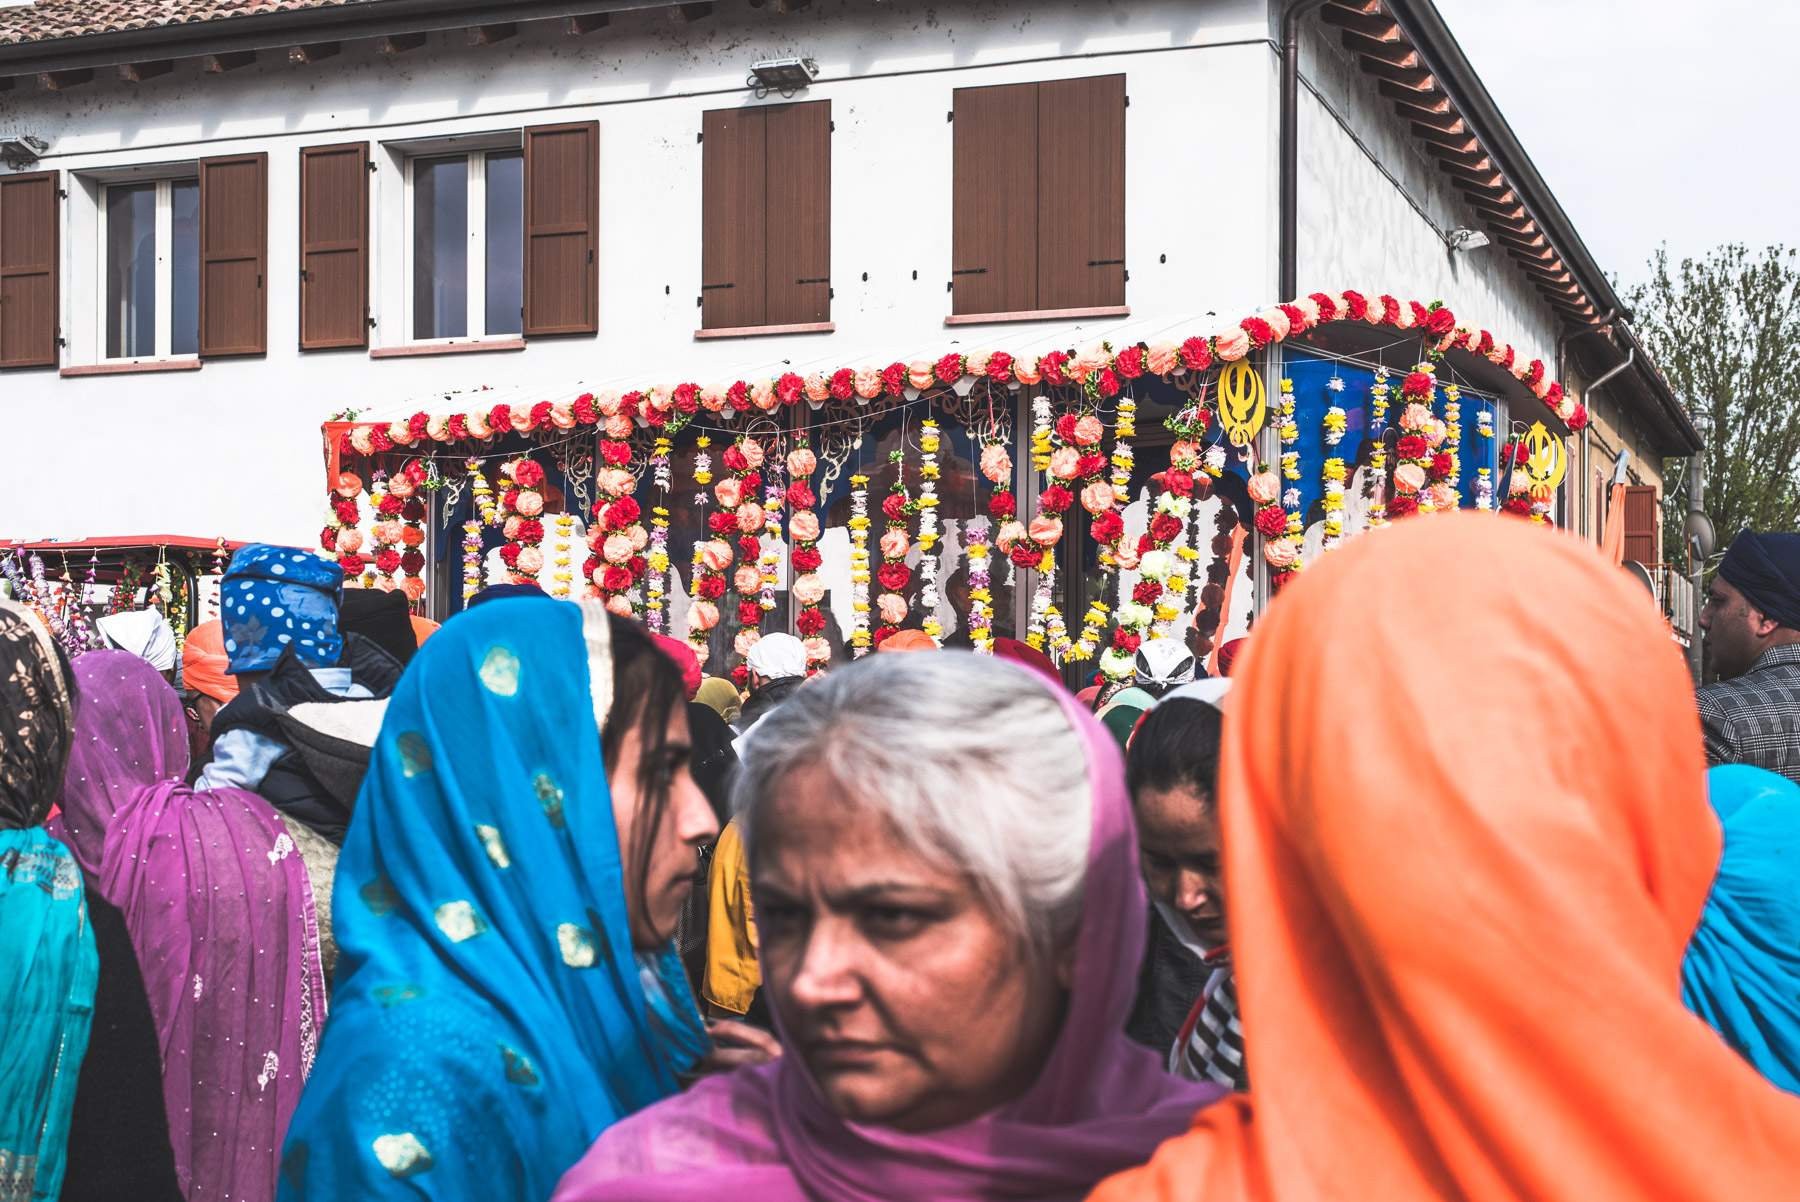 Sikh women attending the Vaisakhi celebration in the city of Novellara